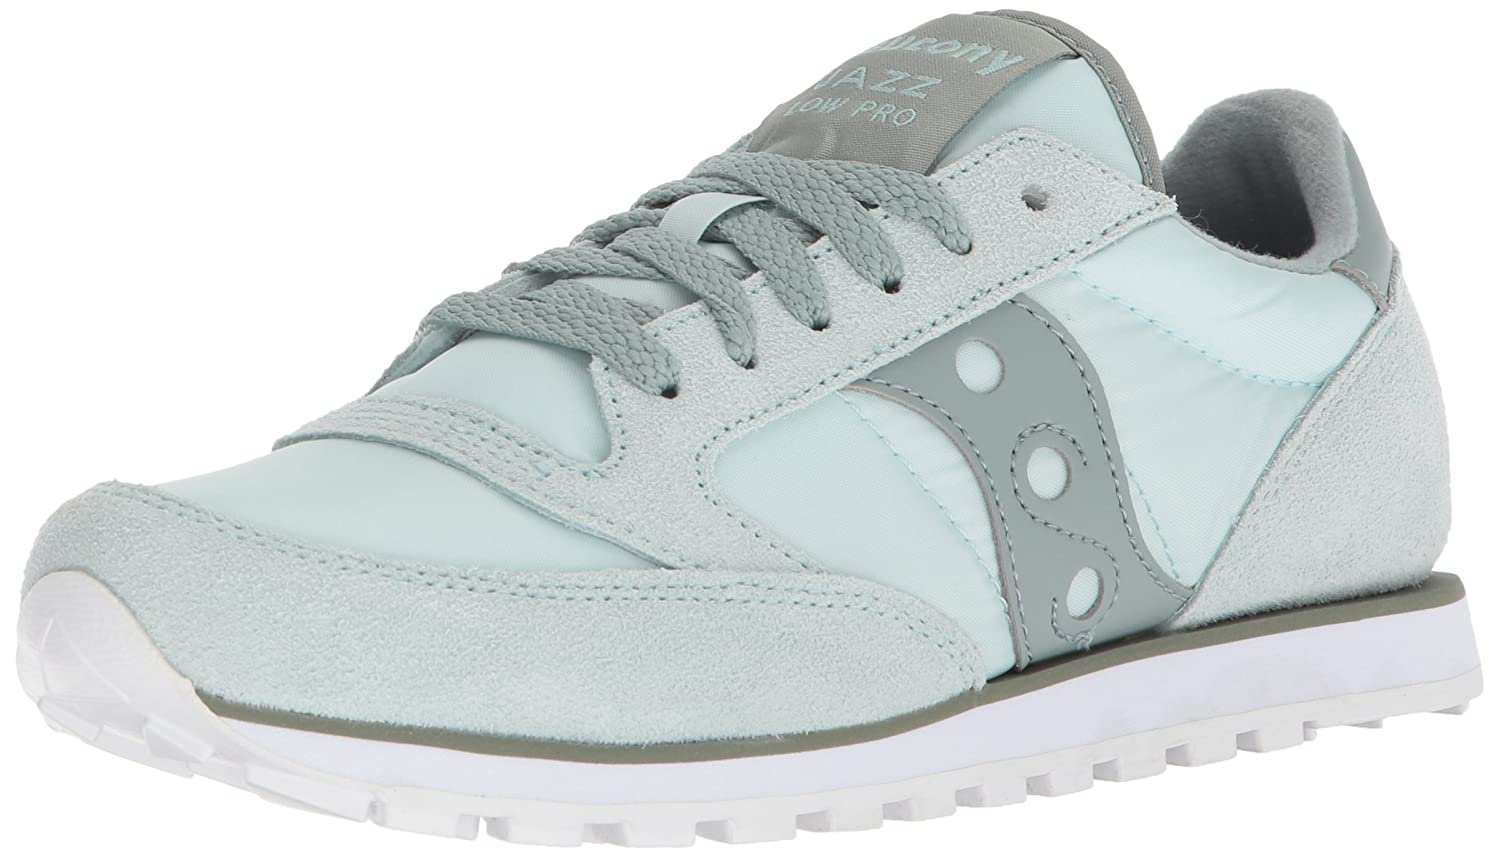 Saucony Originals Women's Jazz Low Pro Running Shoe B072JTWFDH 8.5 B(M) US|Mint